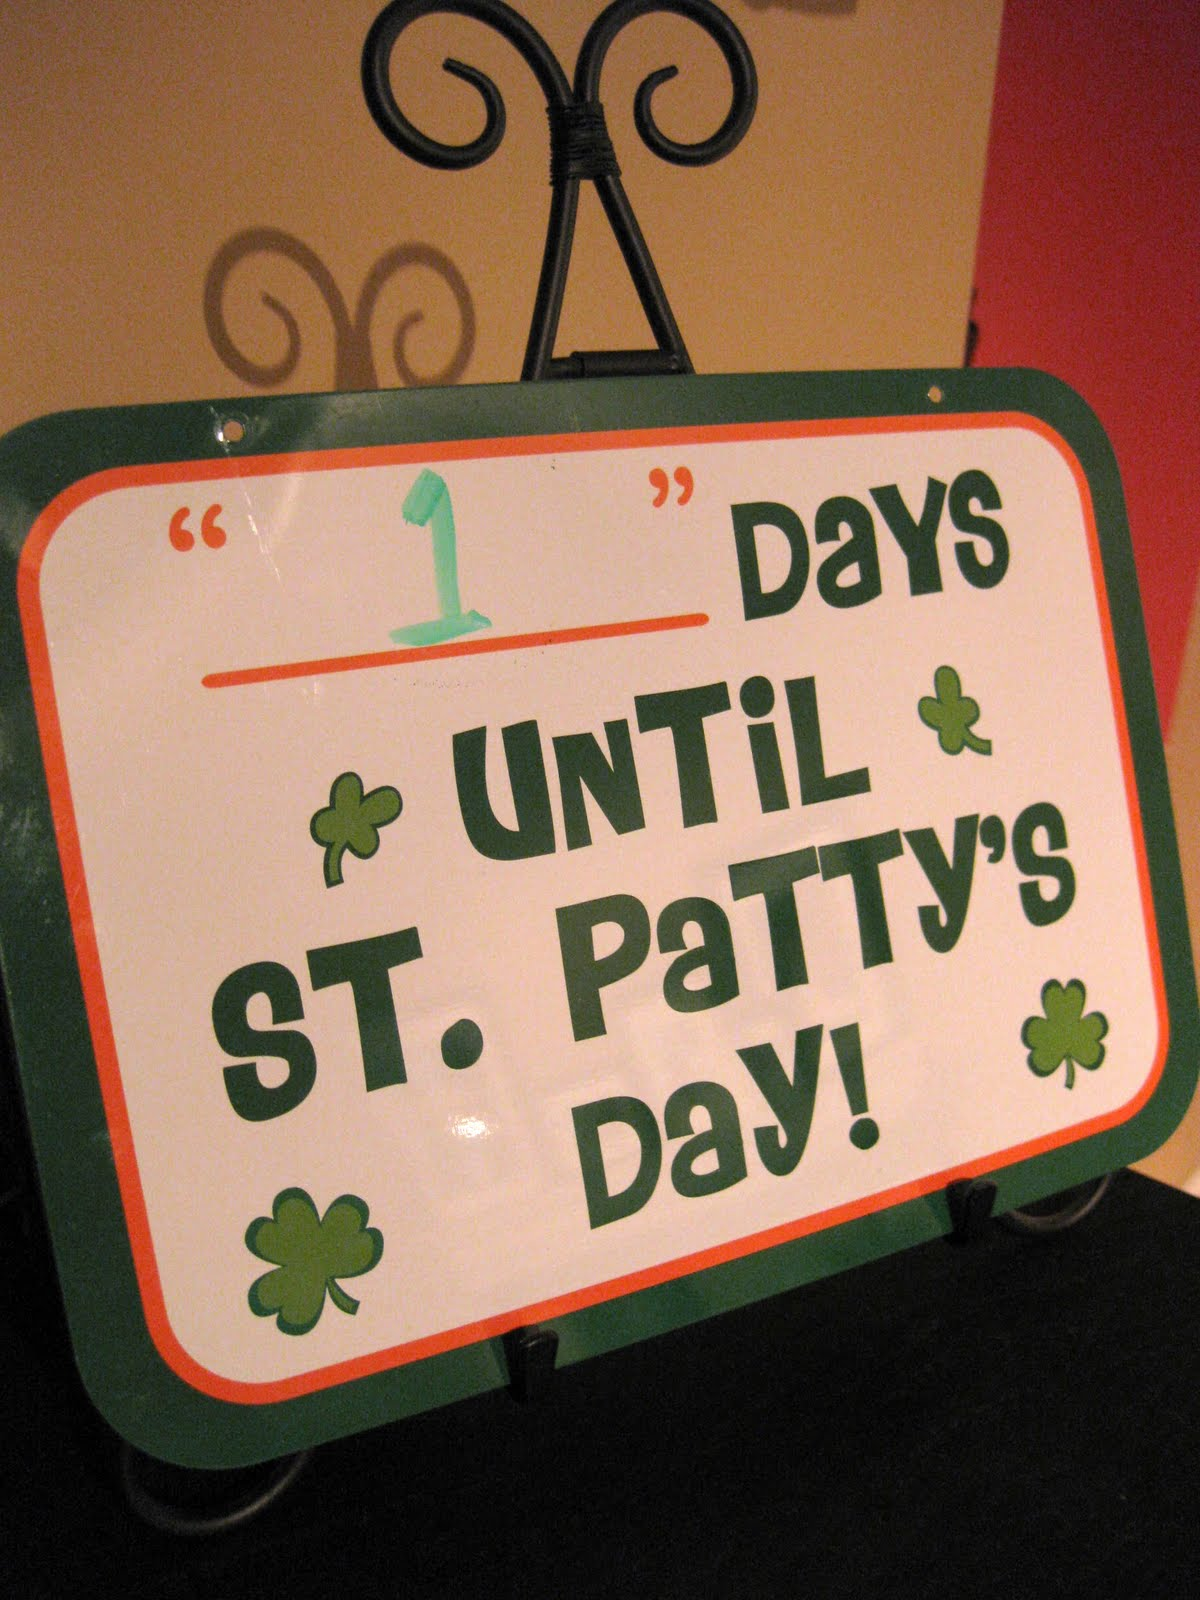 st. patty's day countdown